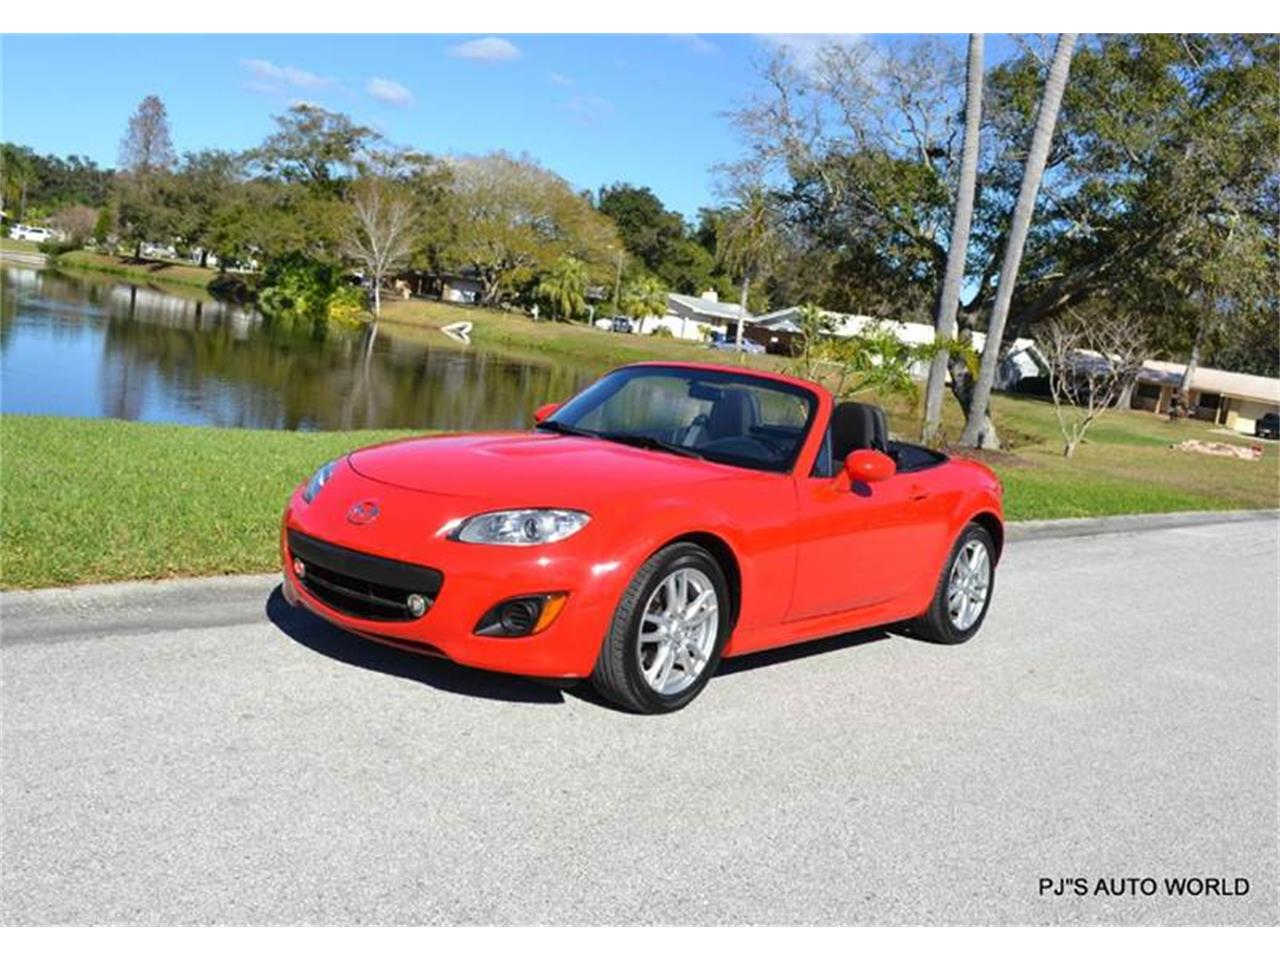 Large Picture of '11 Mazda Miata located in Clearwater Florida - $11,800.00 Offered by PJ's Auto World - KHZE